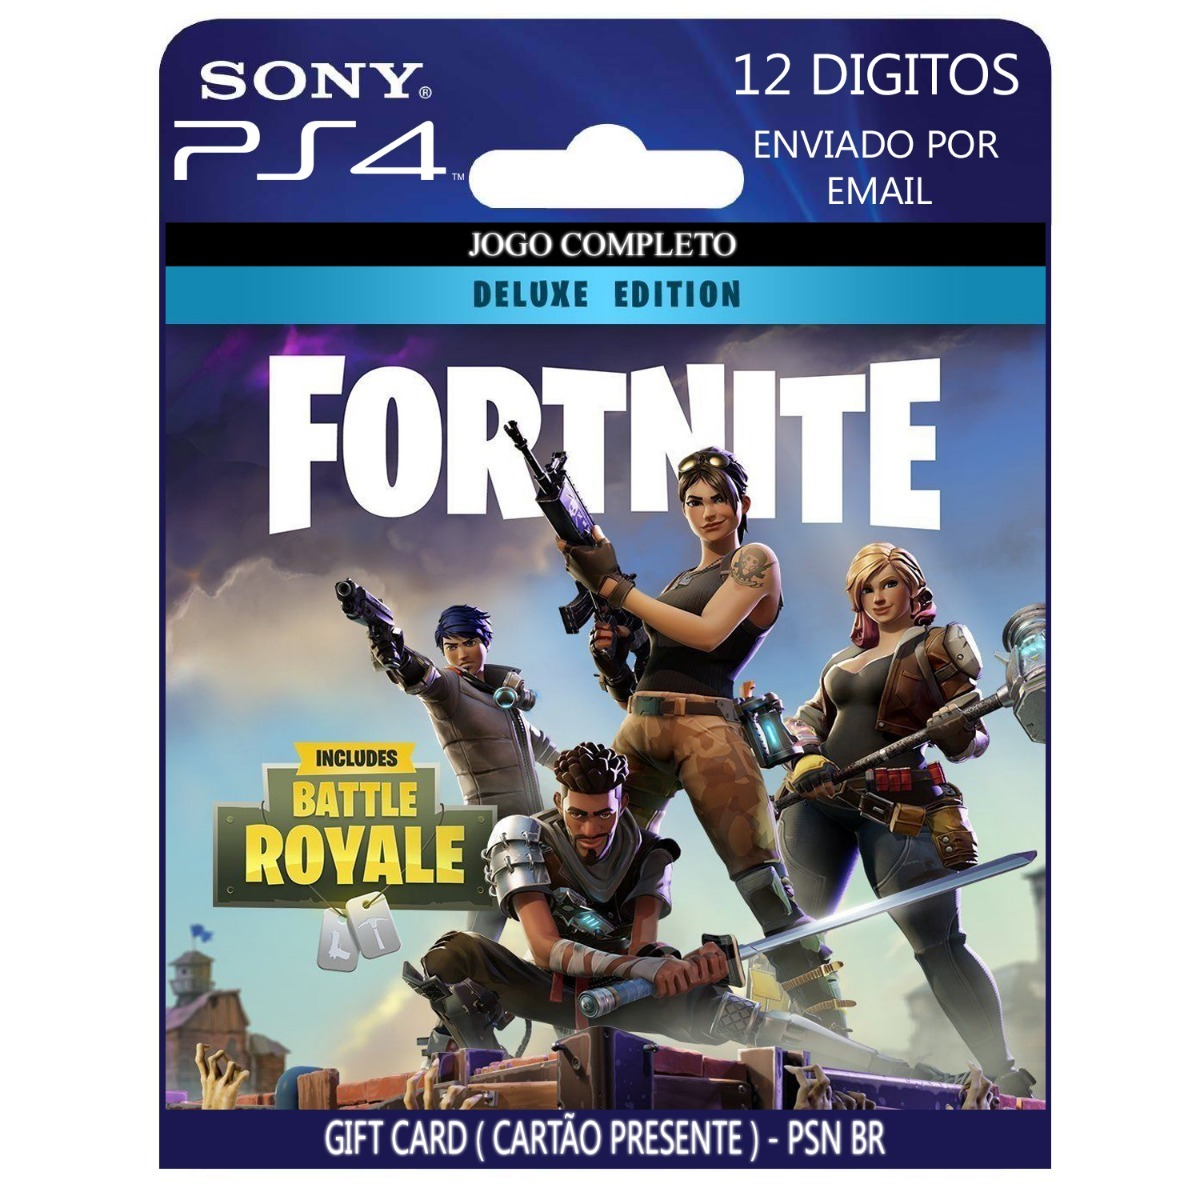 How to use ps4 gift card on fortnite